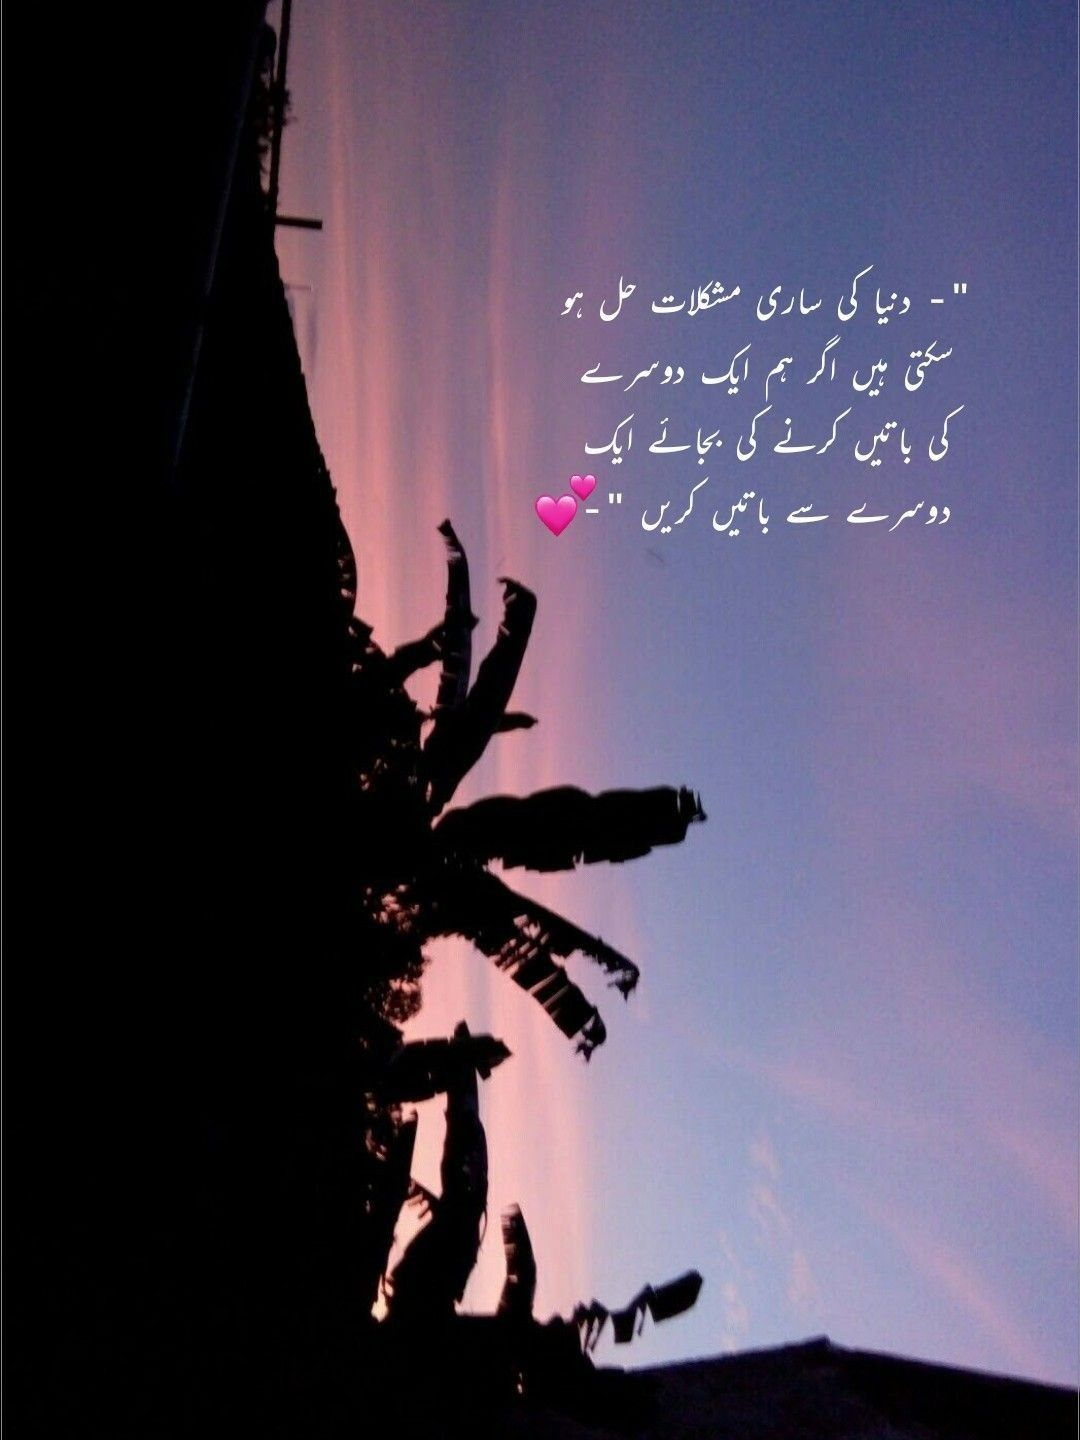 Pin by Sky Bird on رہنمائی__ Soul poetry, Poetry deep